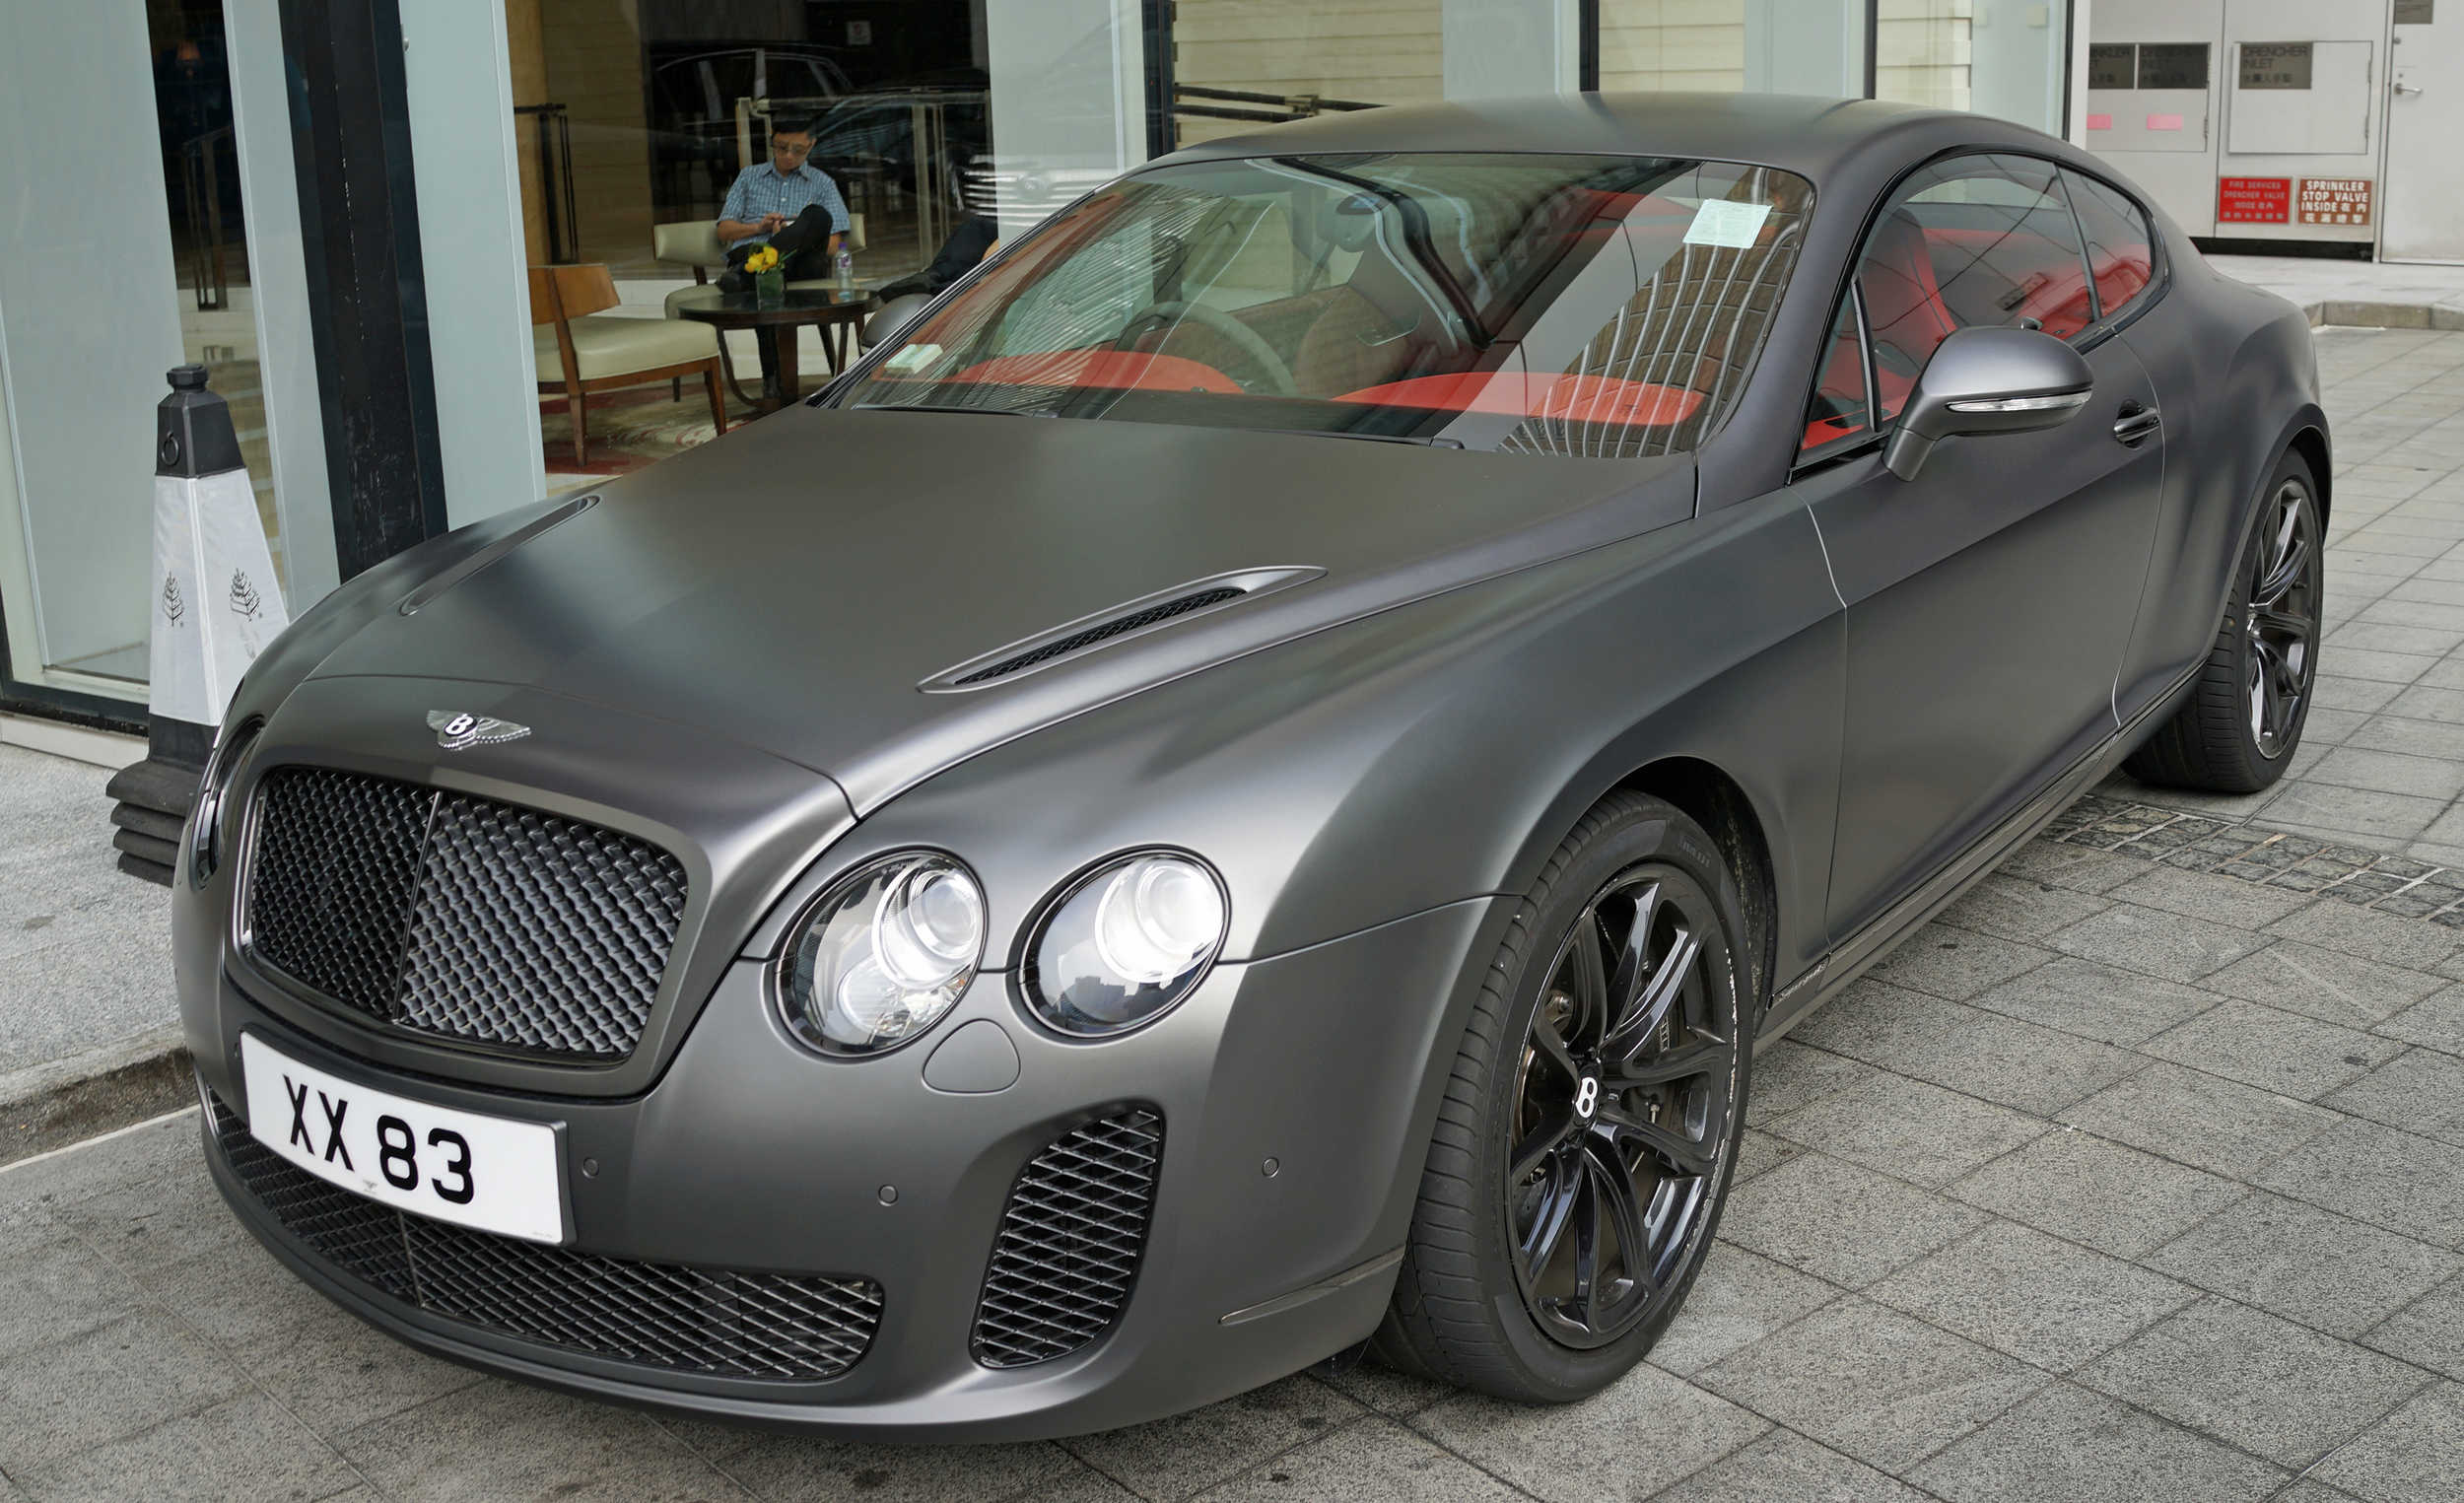 One of my favourite Bentley's at the Four Seasons Place.. simply stunning.